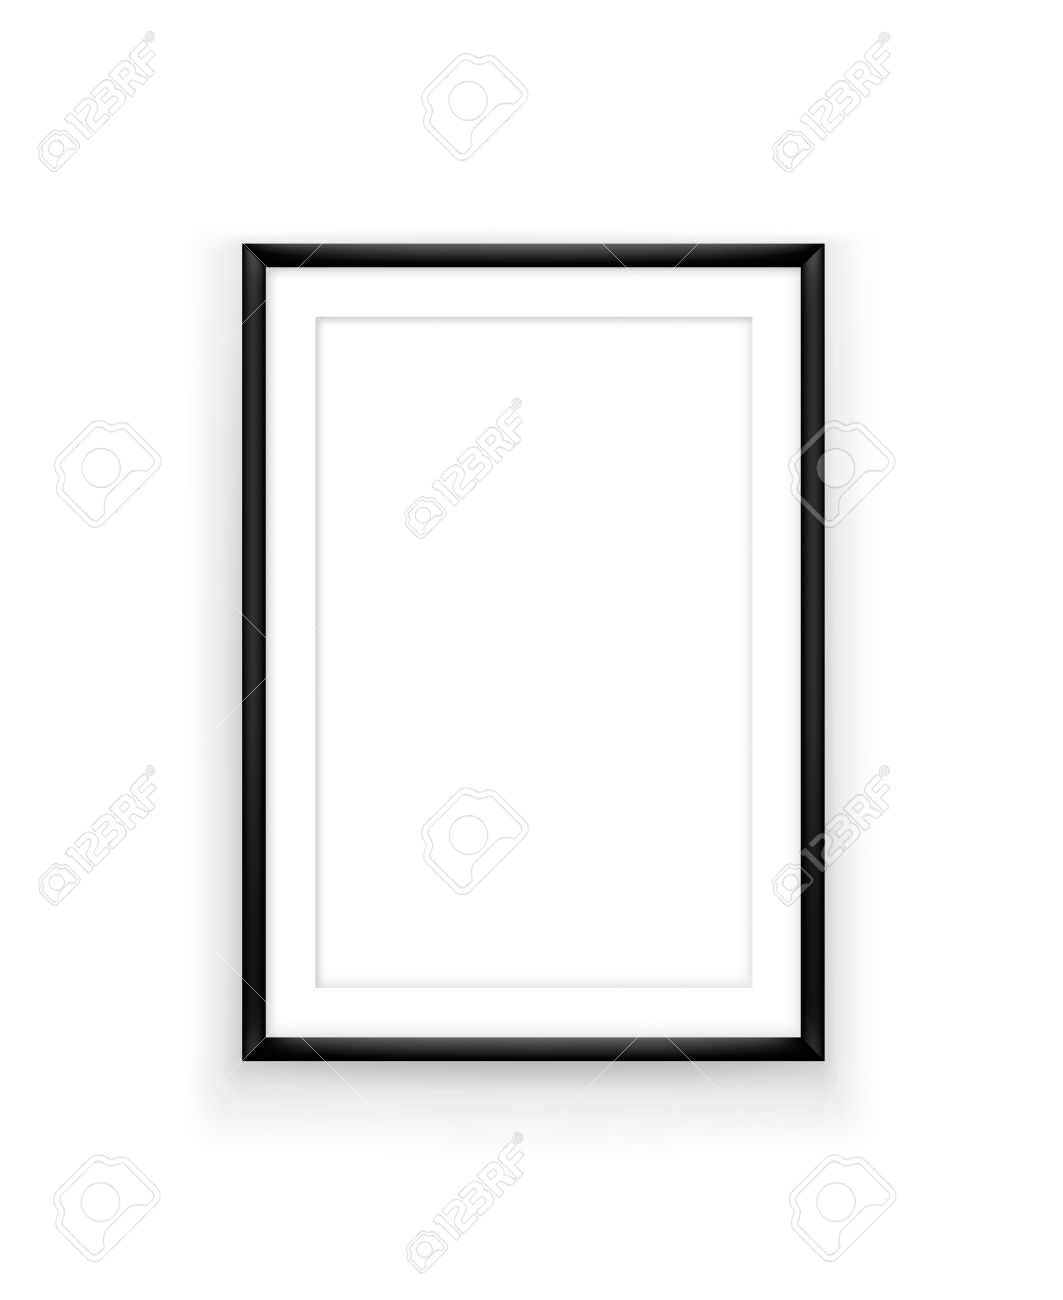 Poster Frame Design Template For Exhibition Or Advertising ...